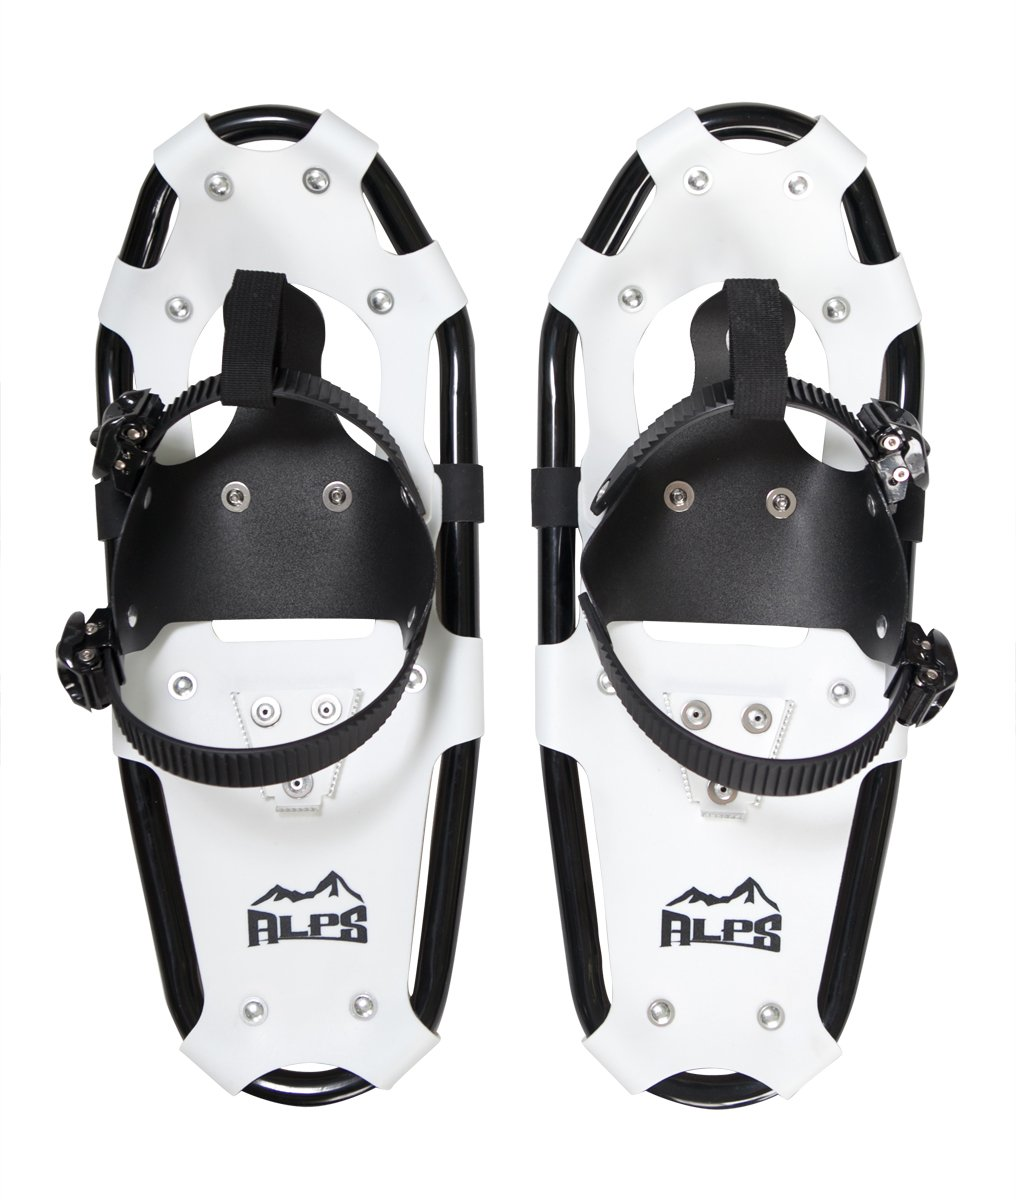 ALPS Light Weight Snowshoes for Kids, Boys & Girls Includes Snowshoes Carrying Tote Bag (19 INCHES) by ALPS Mountaineering